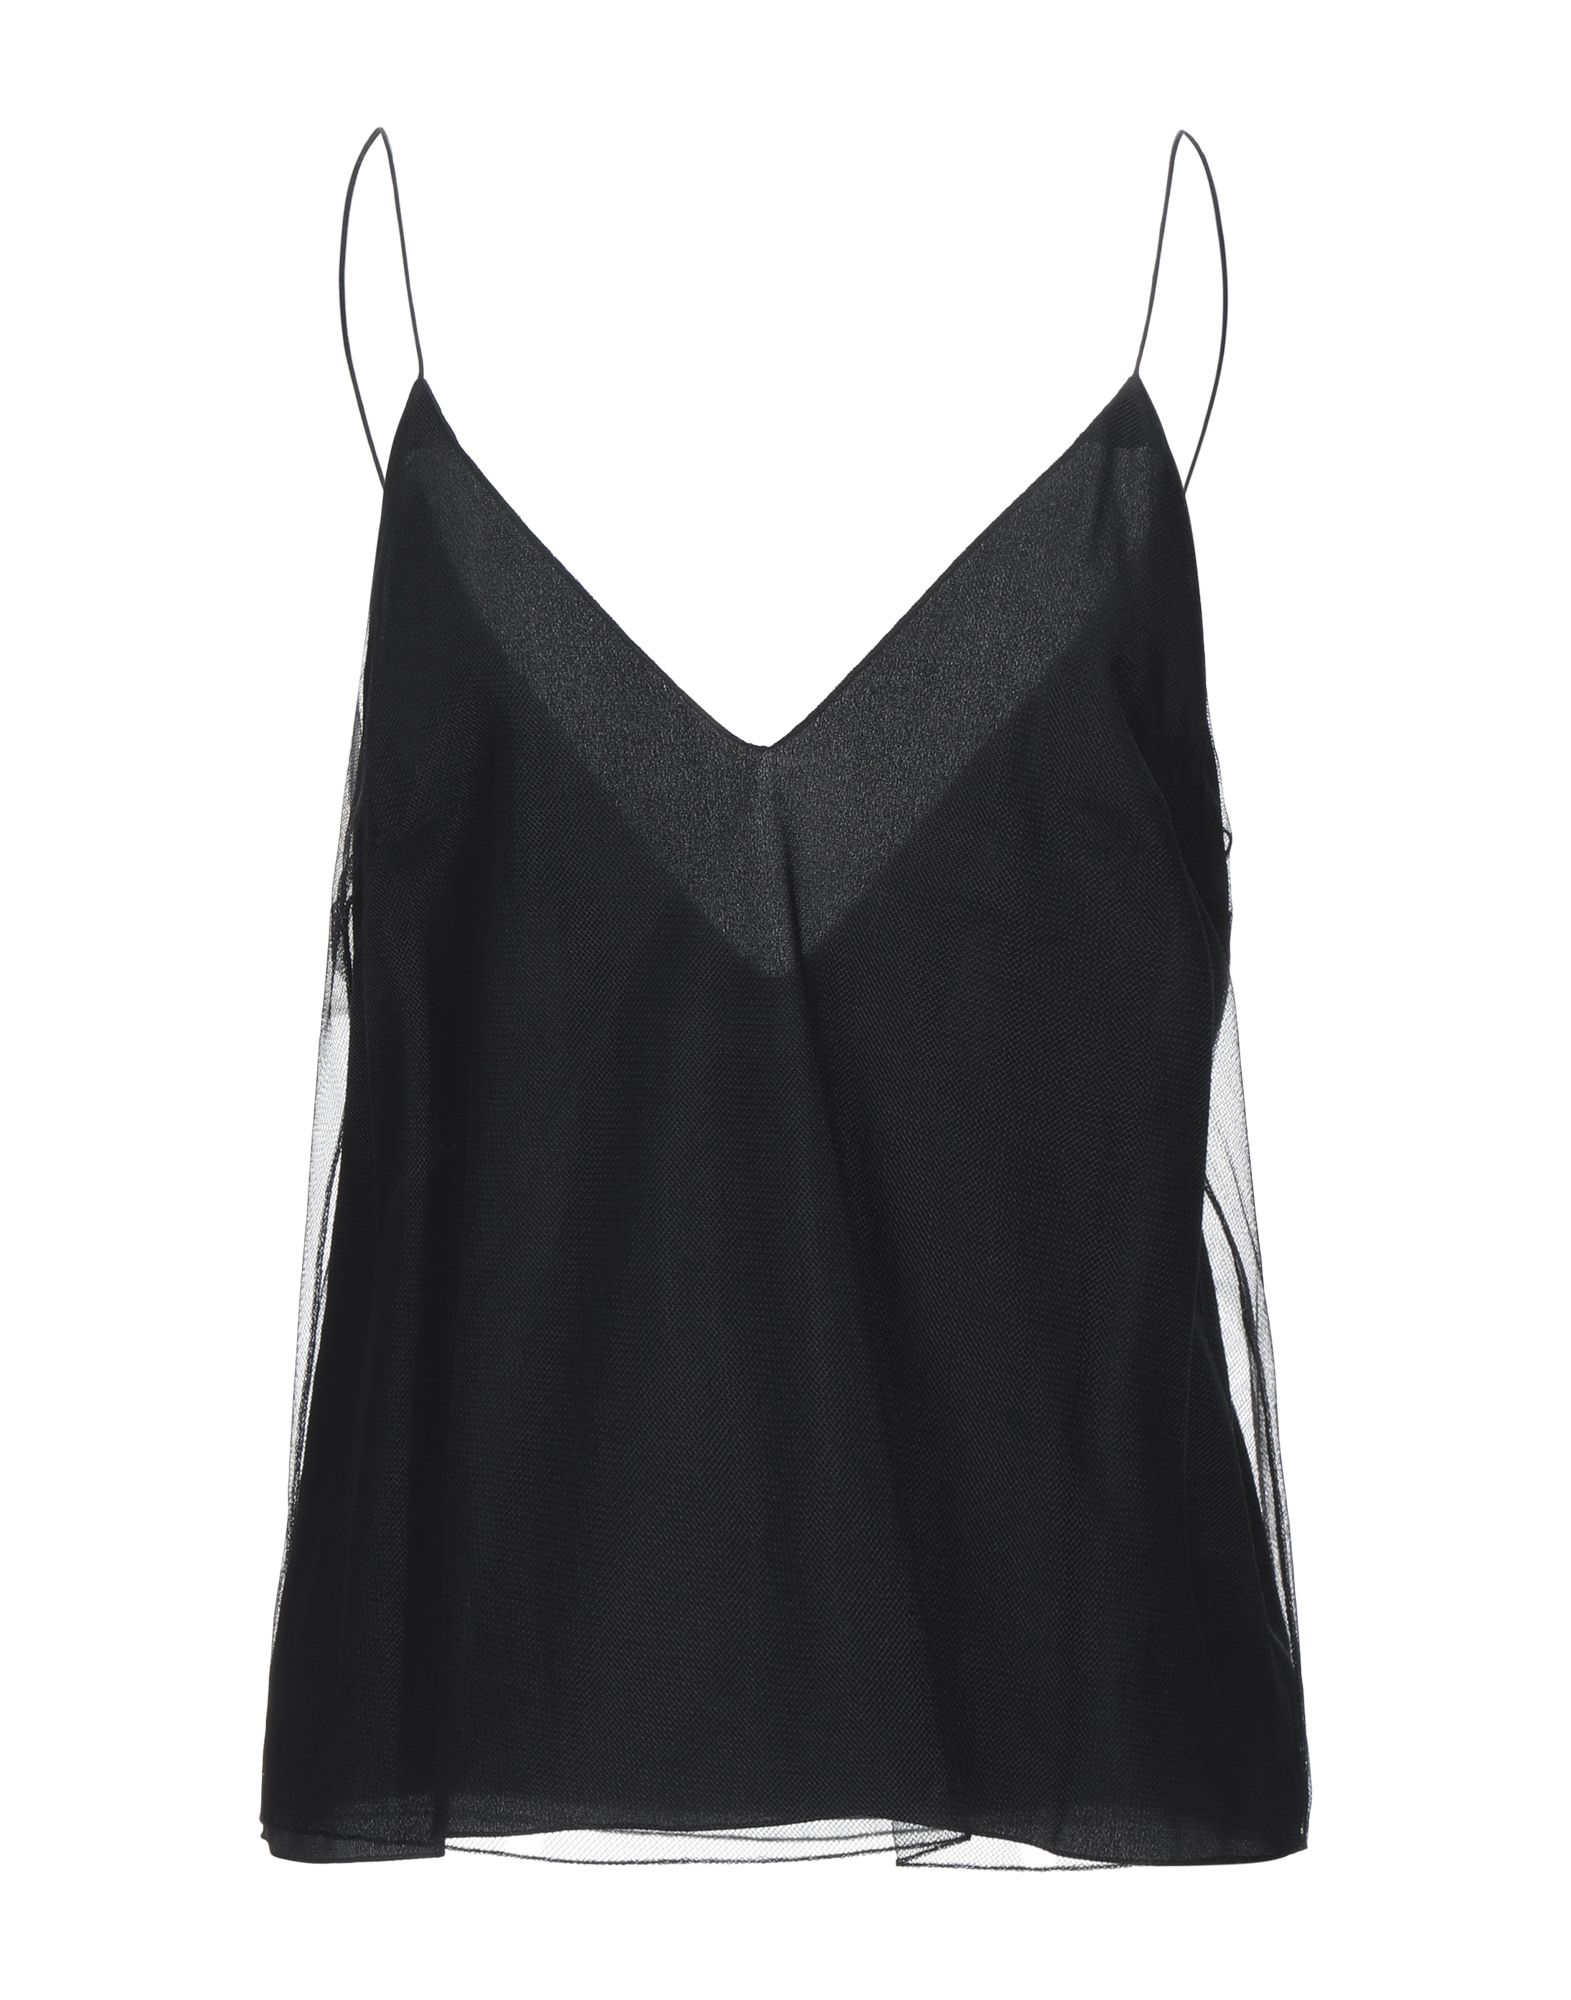 CHLOÉ Tank tops. tulle, no appliqués, basic solid color, deep neckline, sleeveless, no pockets, fully lined. 100% Polyamide, Silk